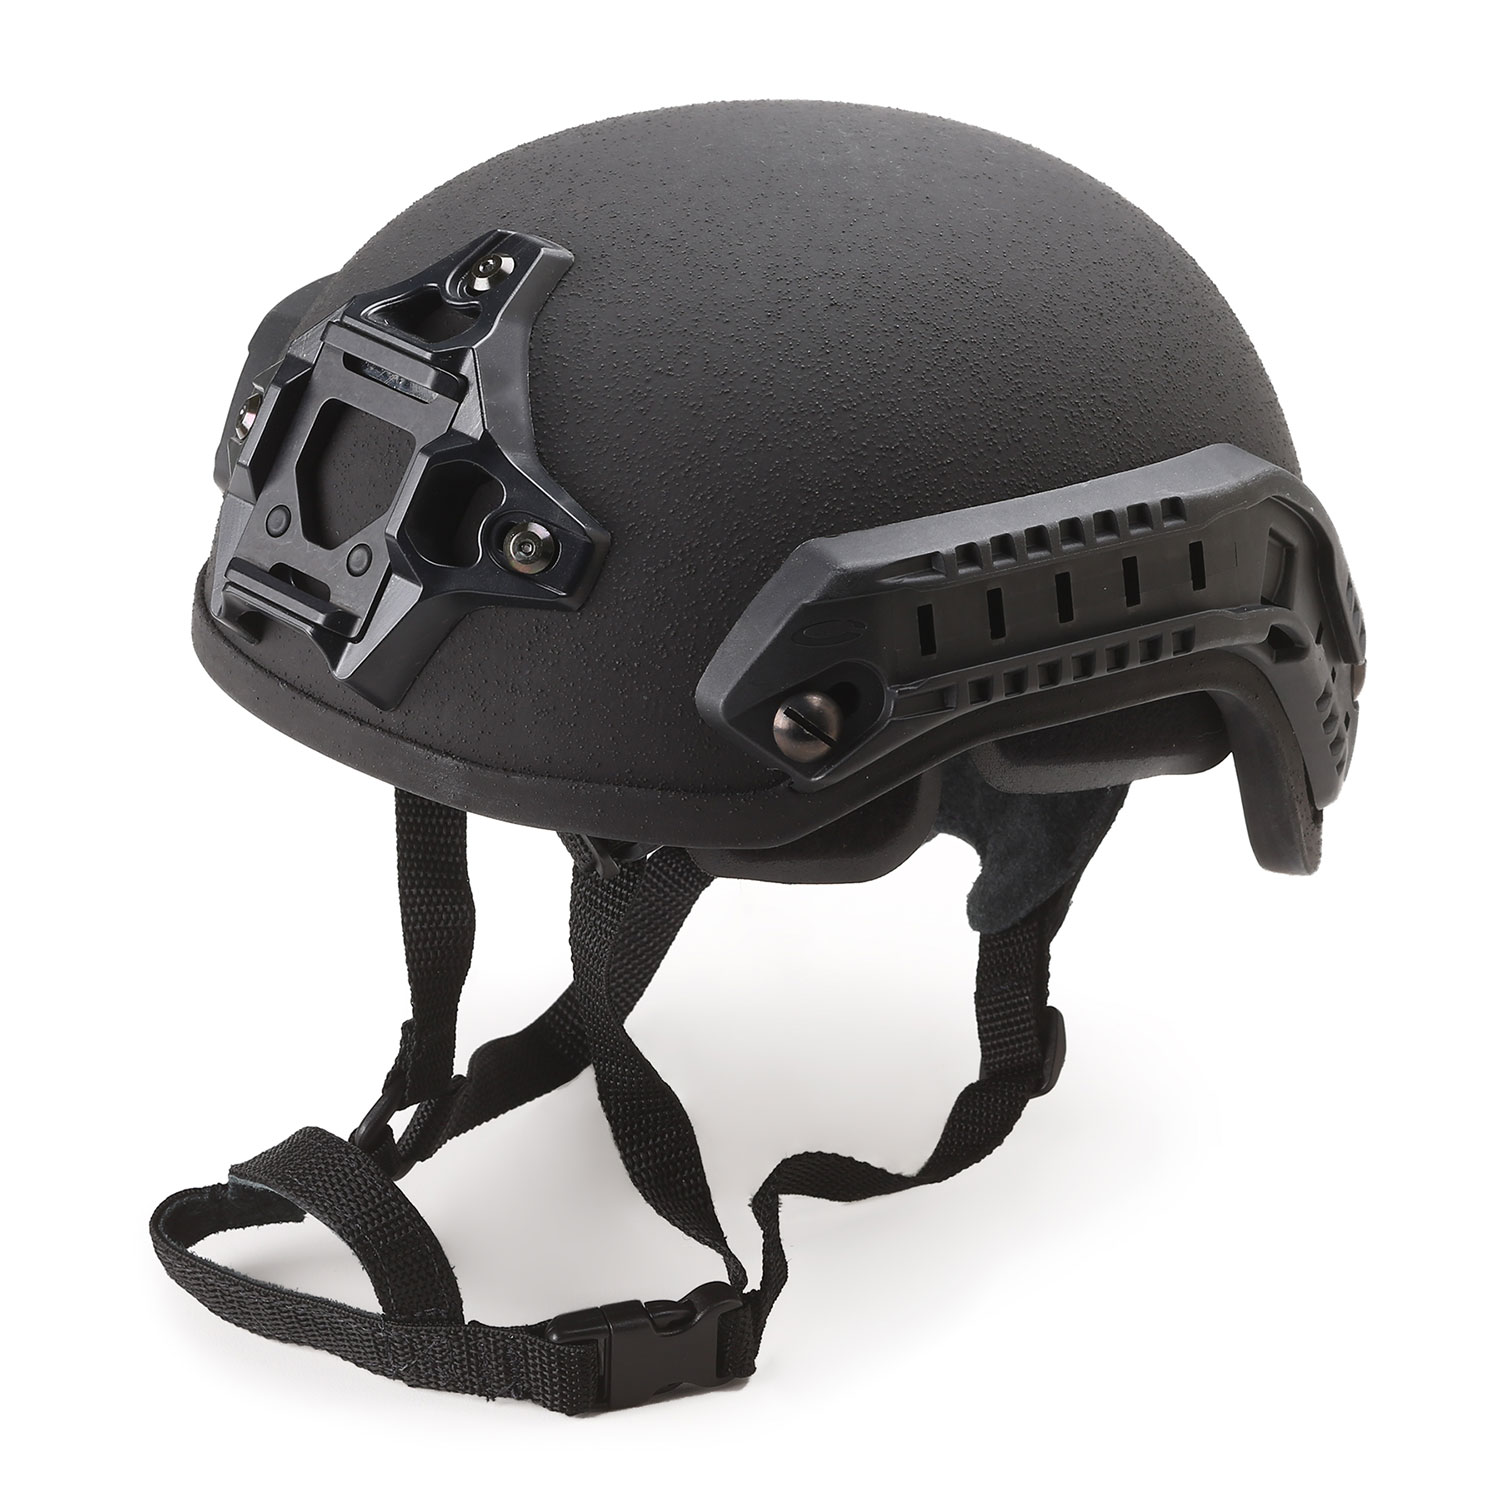 Max Pro MPA Gunfighter Helmet with Rails and NVG Shroud